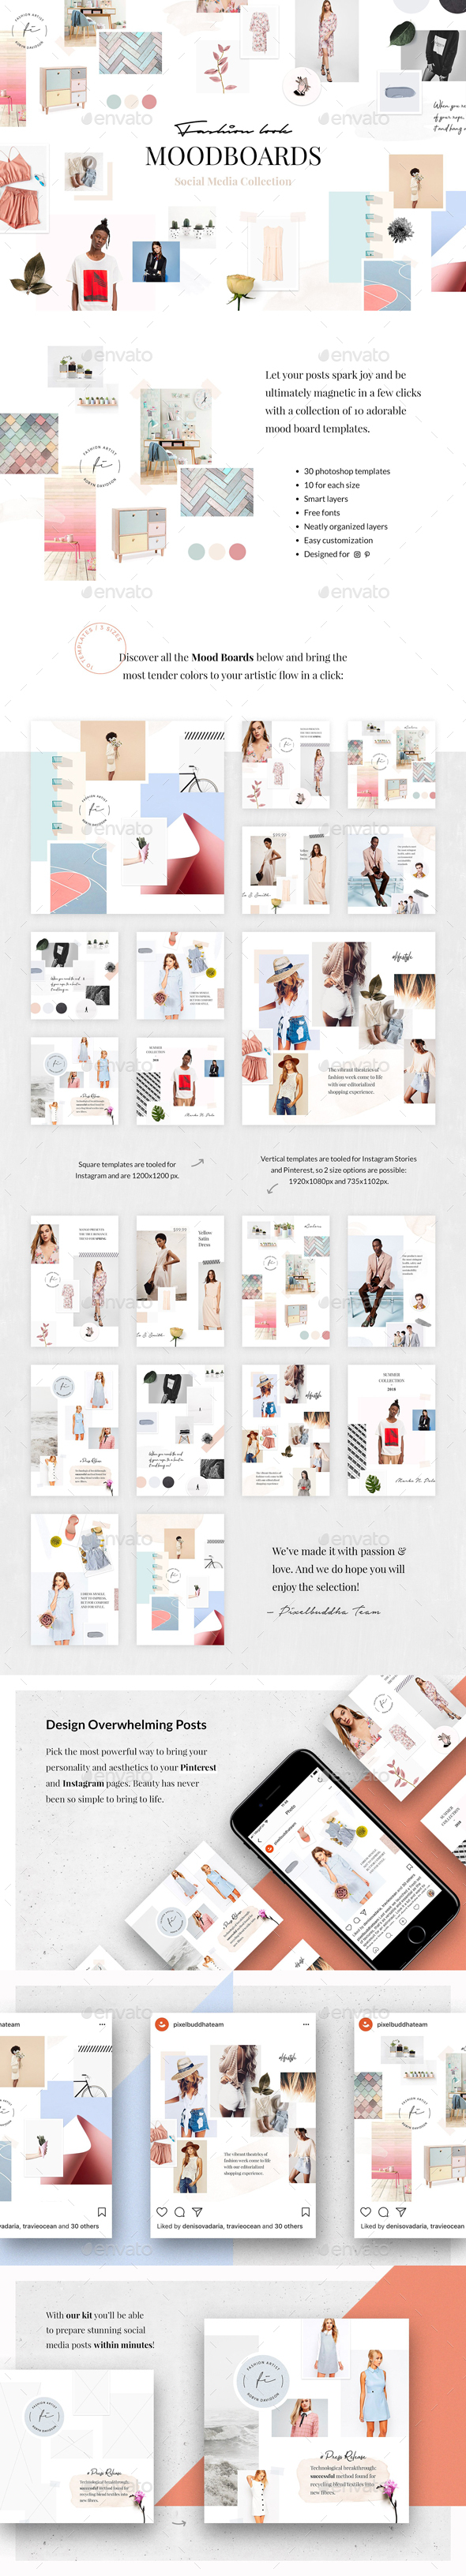 Fashion Look Mood Boards Collection - Social Media Web Elements